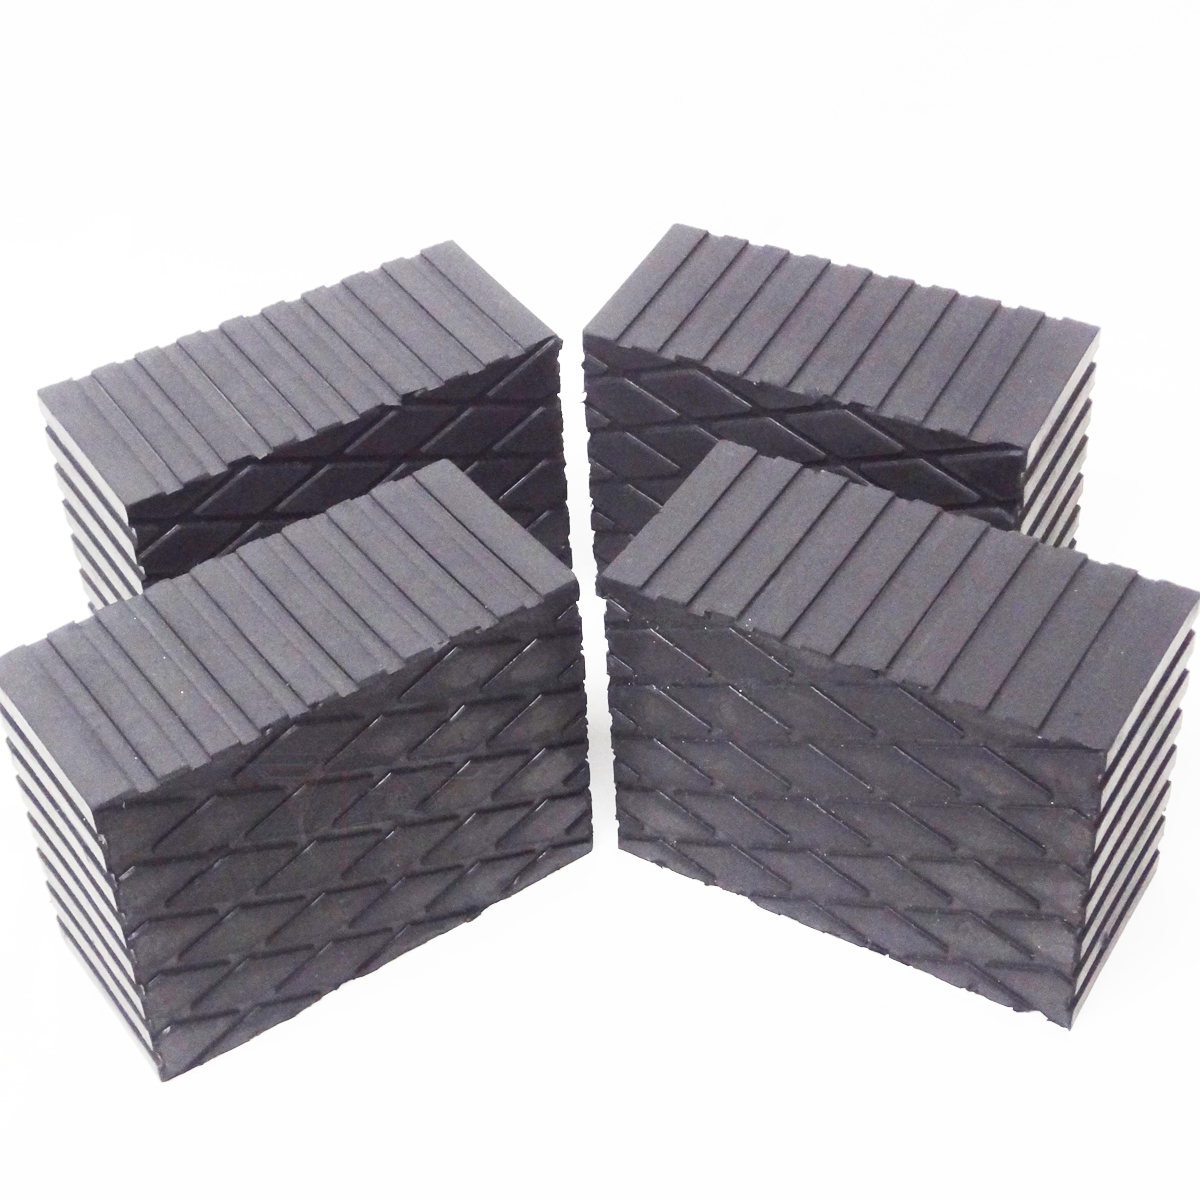 "3"" Tall Rubber Stack Blocks for Any Auto Lift or Jack ..."